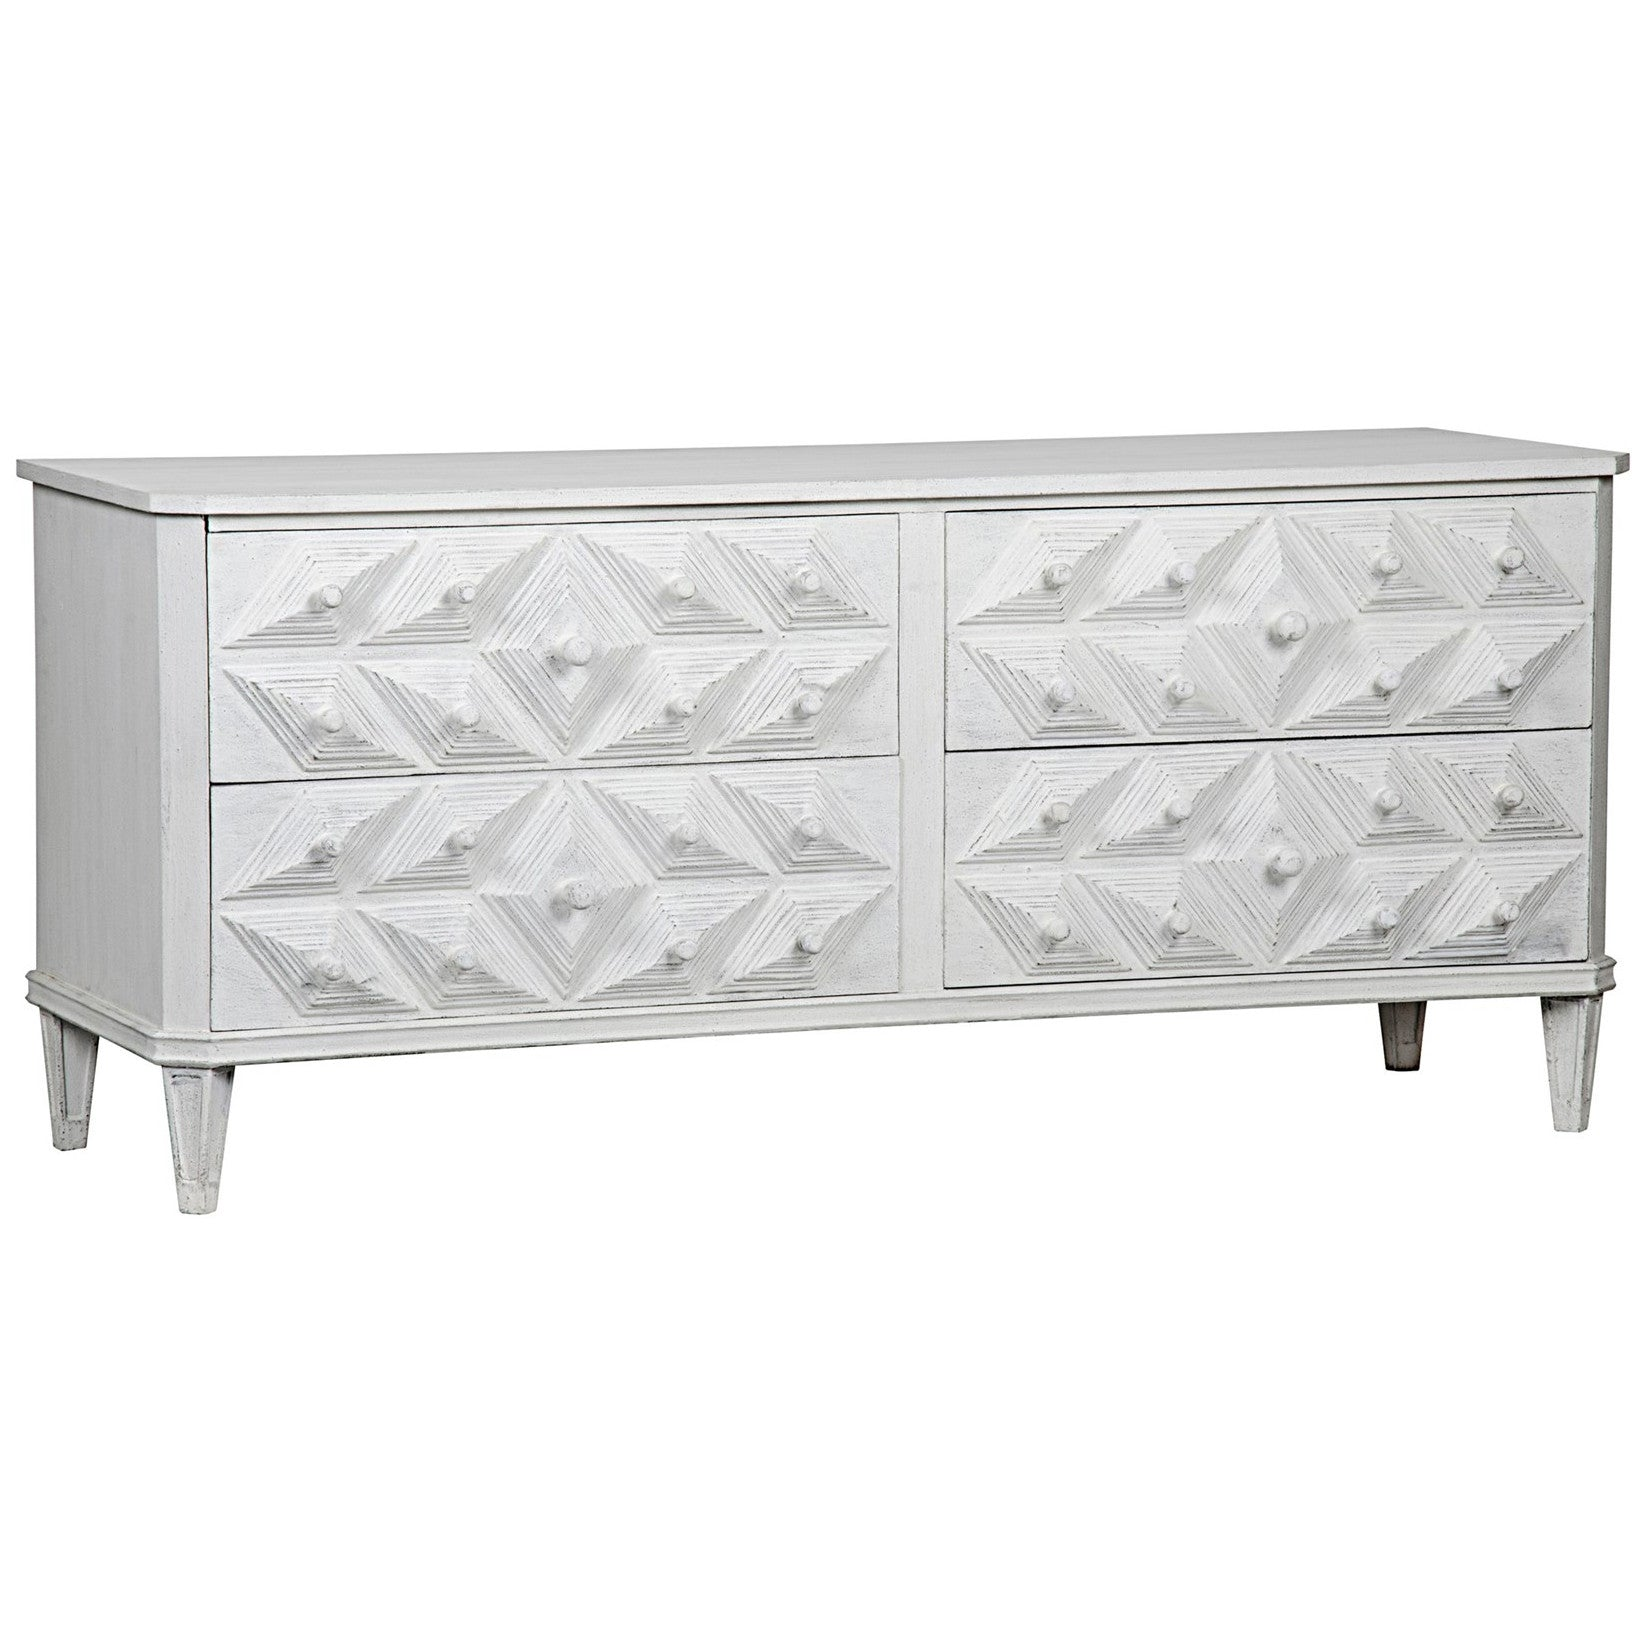 Noir - Giza 4 Drawer Dresser, White Weathered